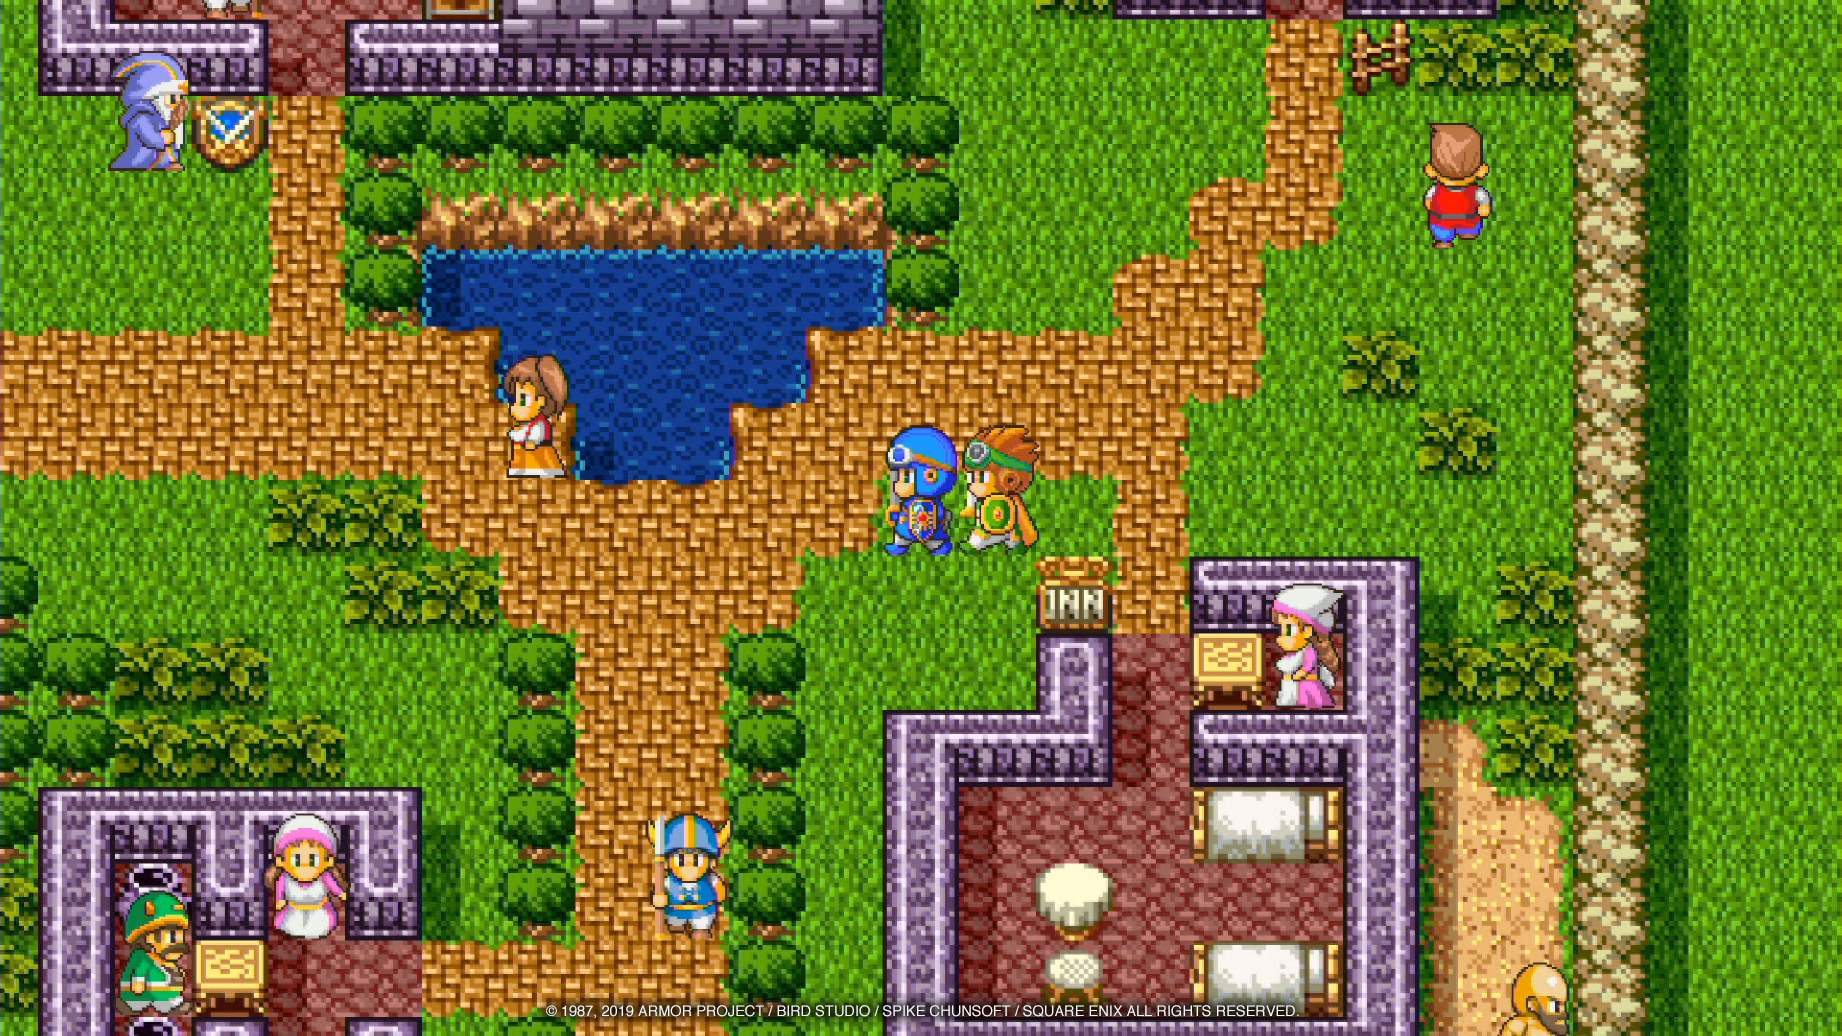 Dragon Quest 1, 2, and 3 are coming to Nintendo Switch